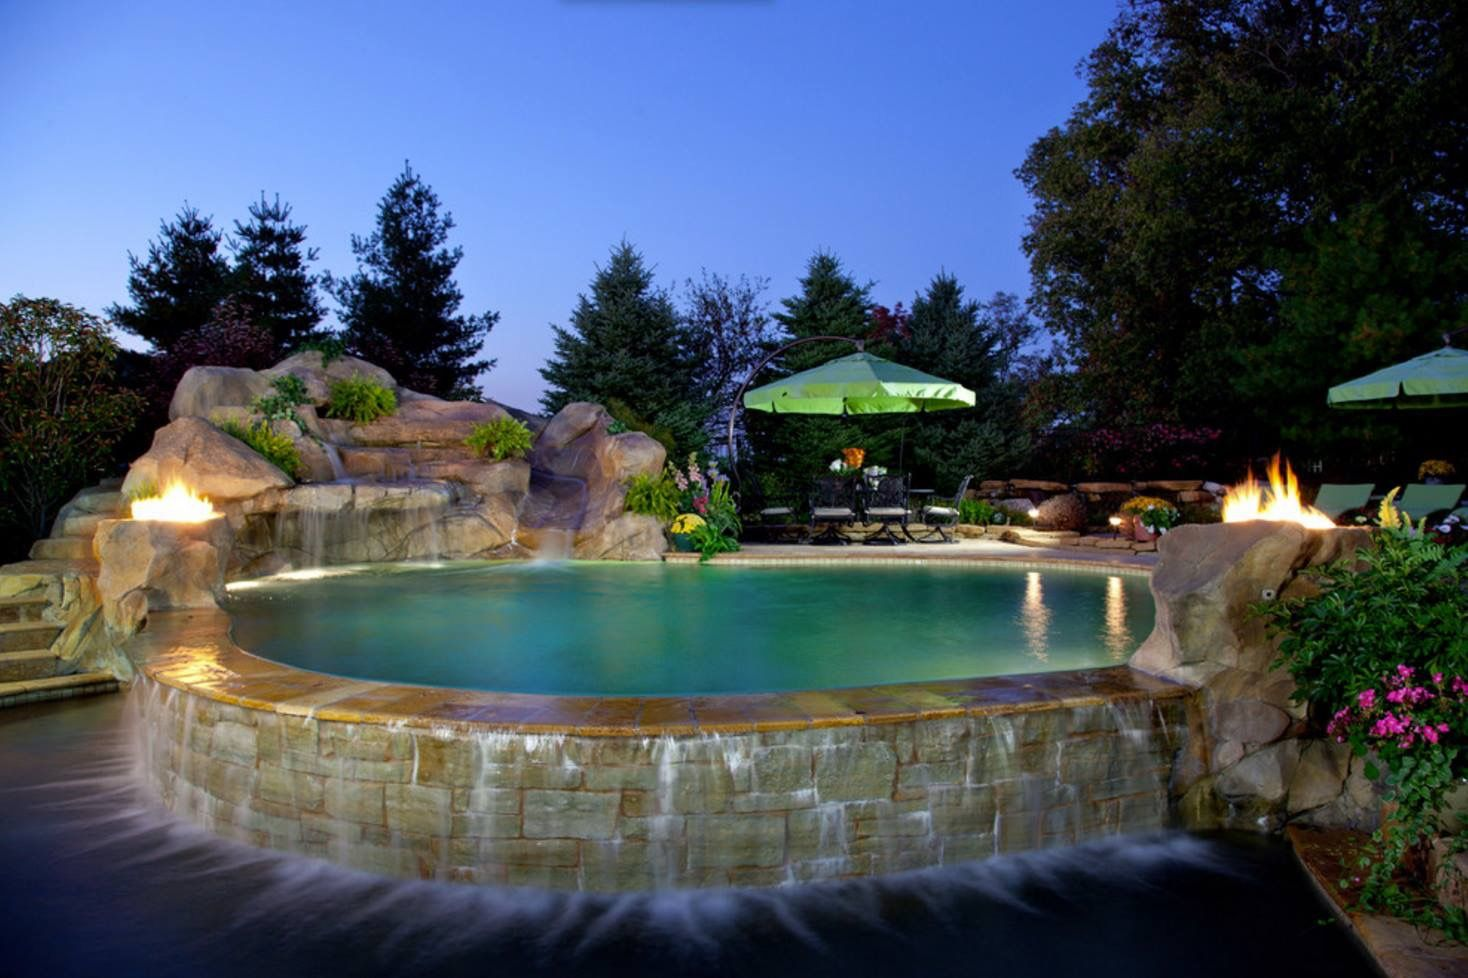 Did You Know The Cost Of Adding An In Ground Swimming Pool To Your Home Ranges On Average Between 33 Pool Hot Tub Swimming Pool Hot Tub Swimming Pool House